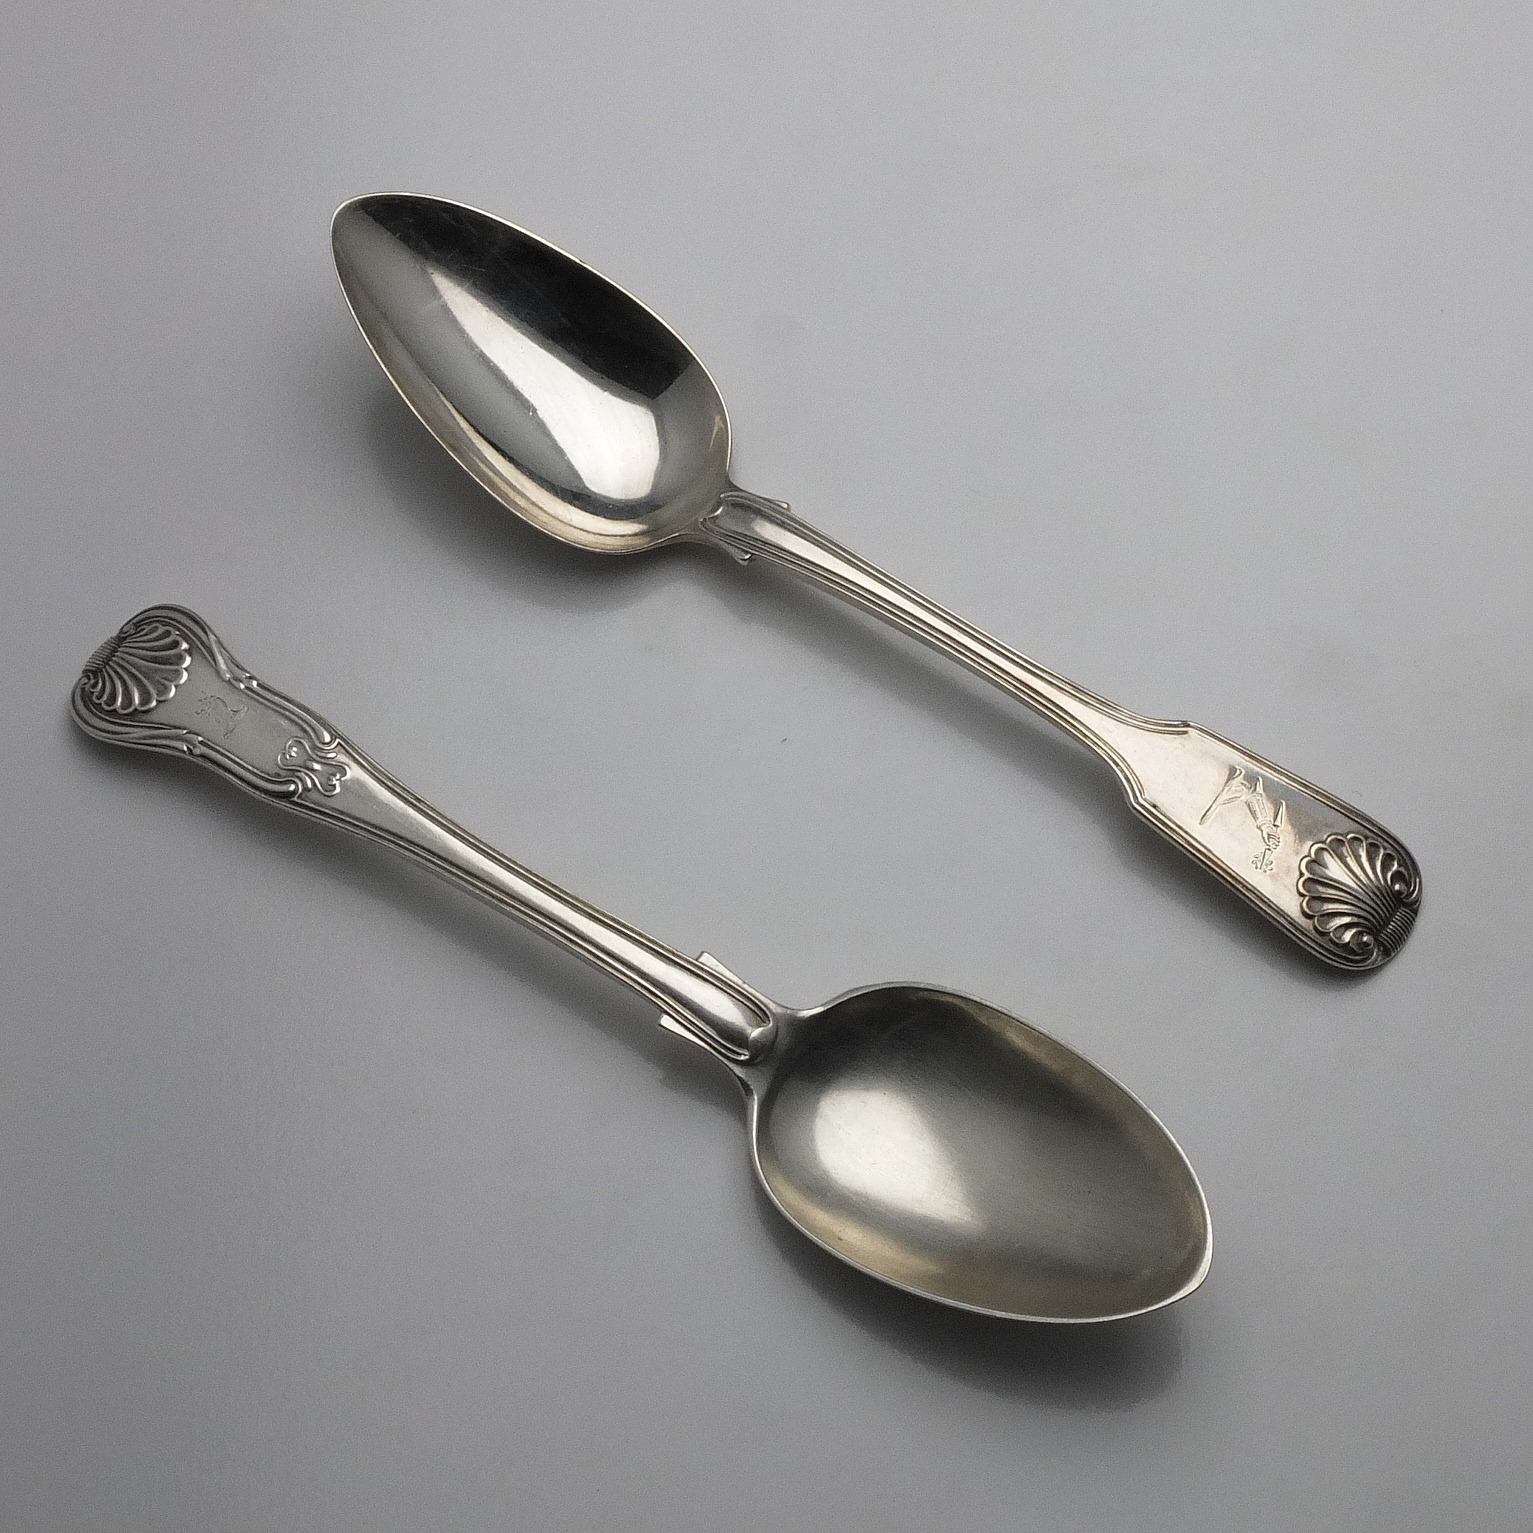 'Two Crested Sterling Silver Table Spoons Richard Pearce London 1819 and Charles Boyton II London 1891'